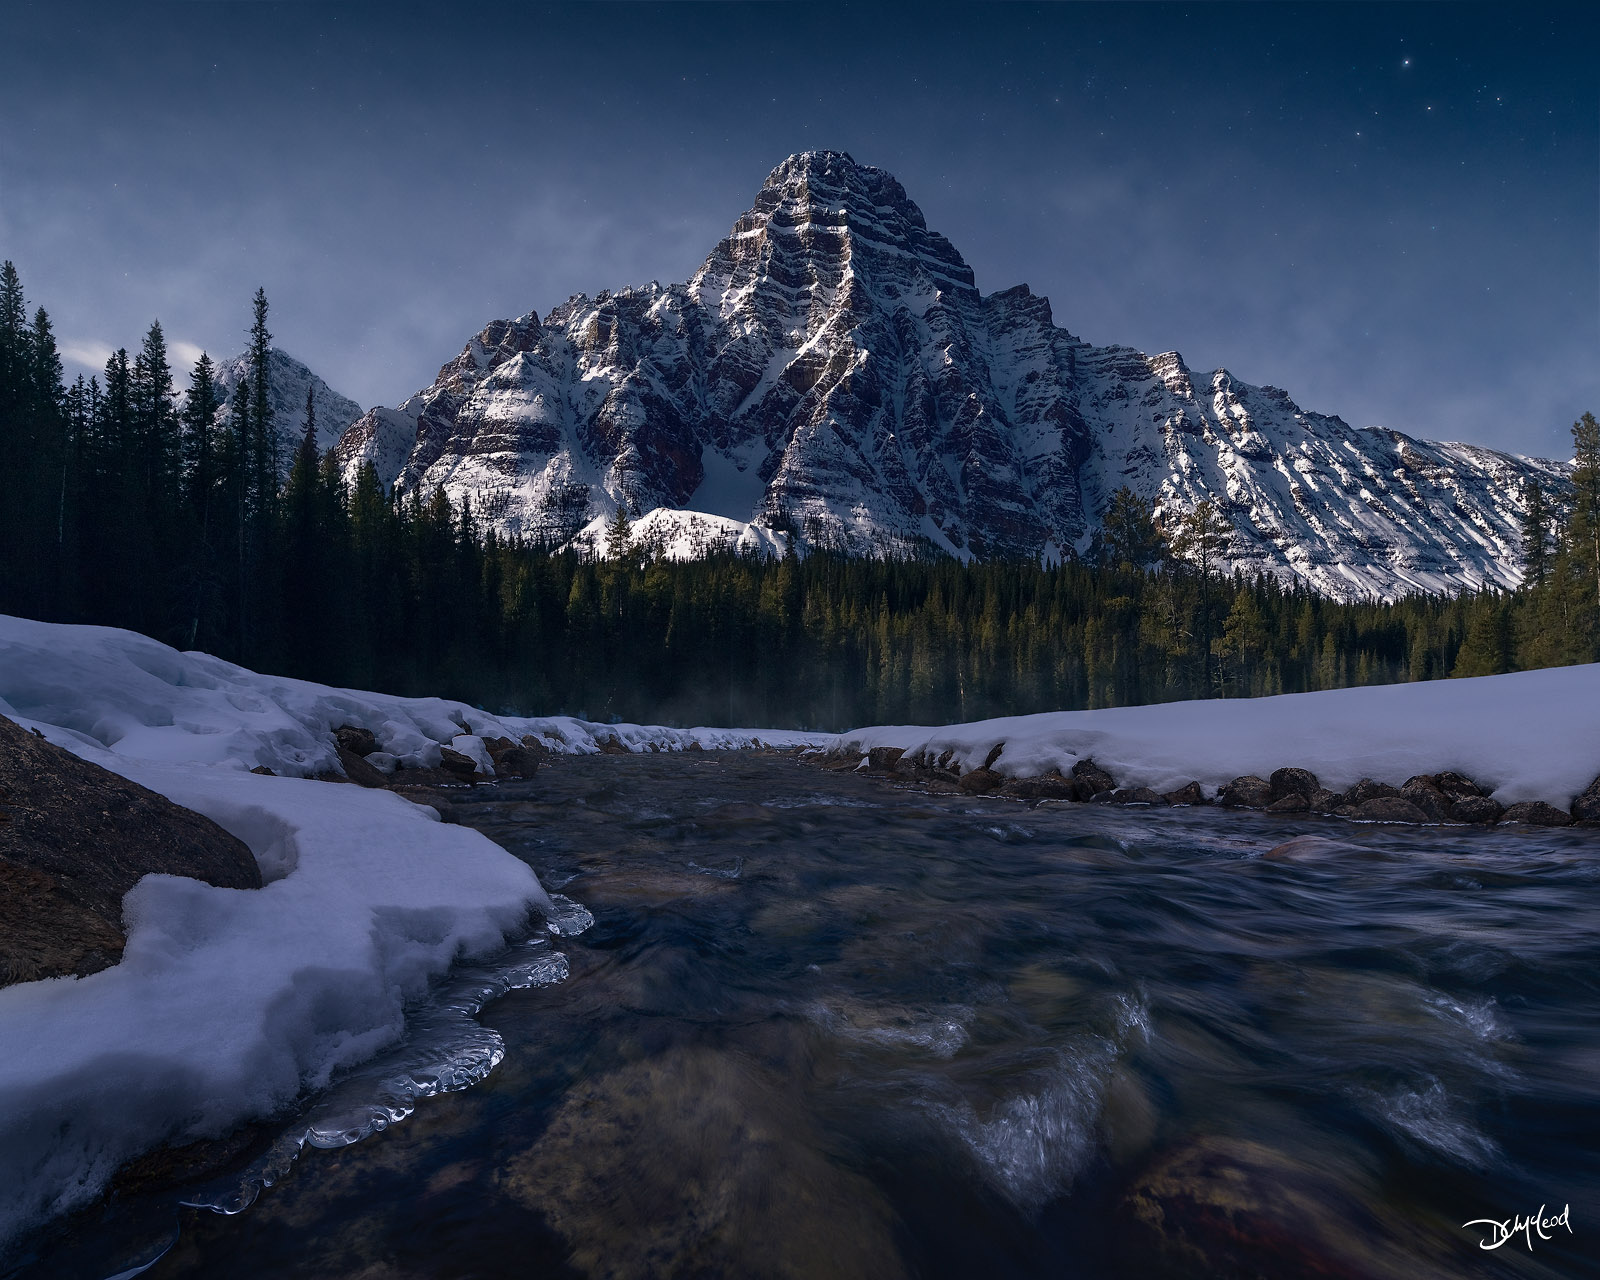 Mount Chephren in Banff National Park receives bright sidelight from the moon during the night with ice and snow on the shore of the river in the foreground.